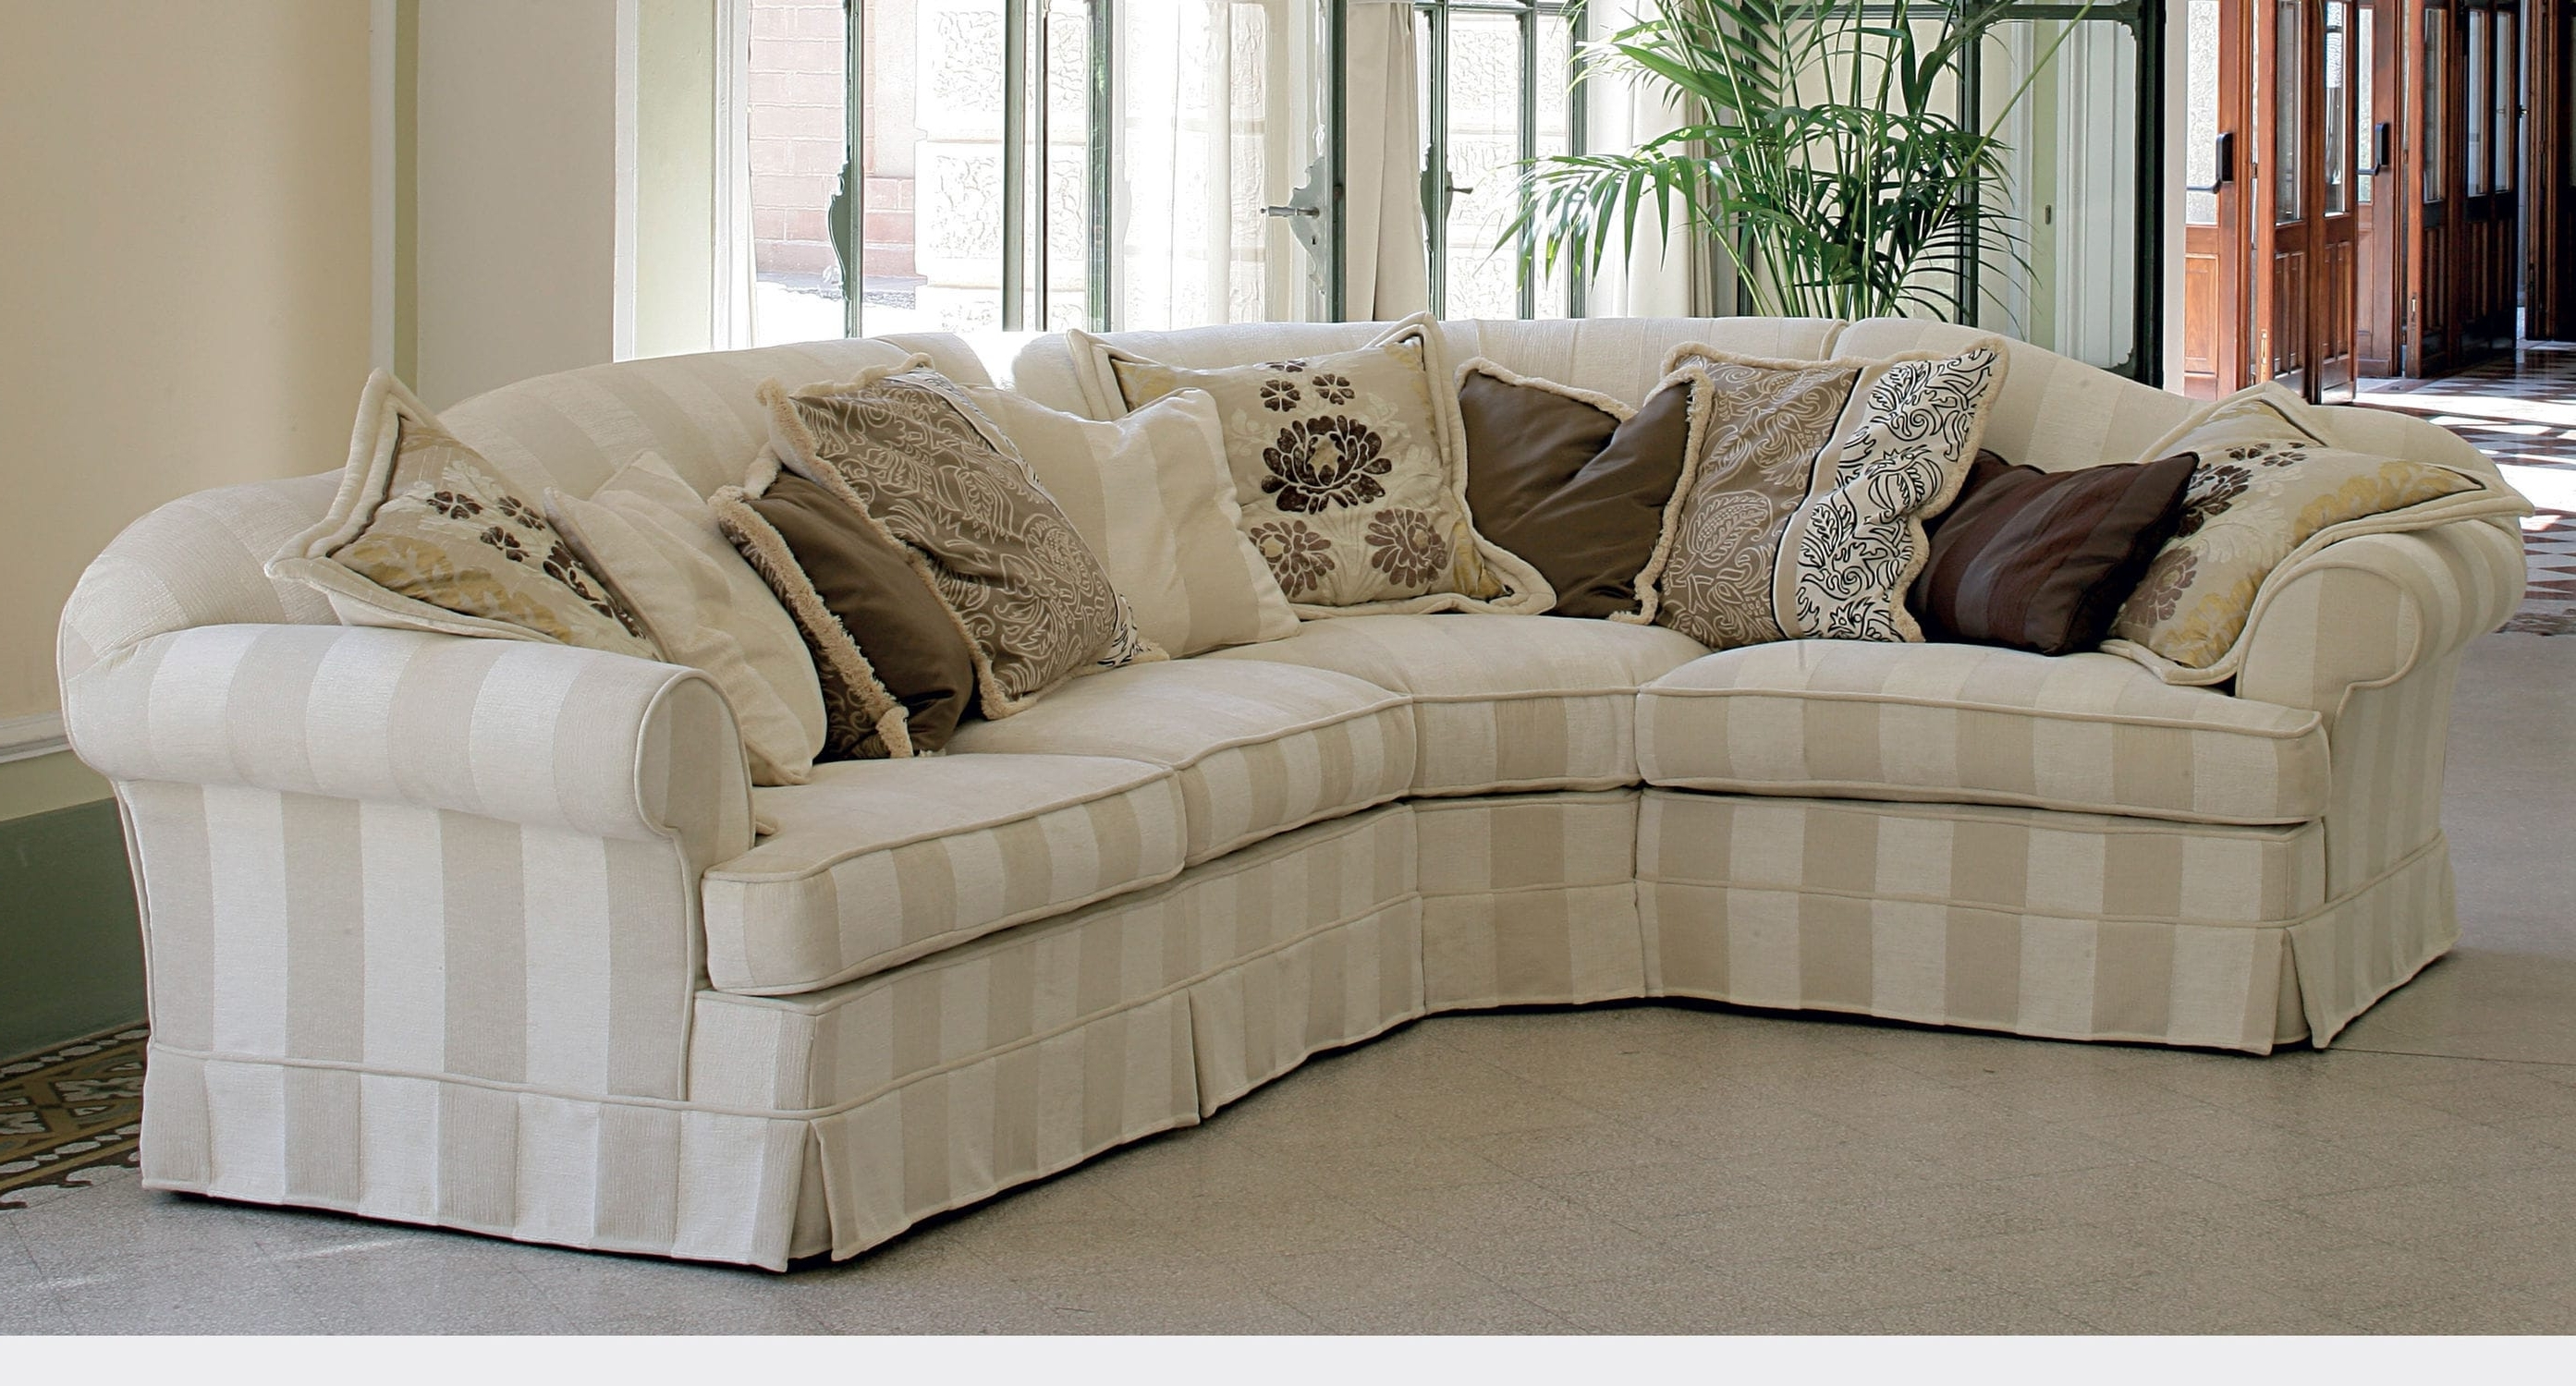 Most Recently Released Corner Sofa / Contemporary / Fabric / With Removable Cover Within Sofas With Removable Covers (View 6 of 15)